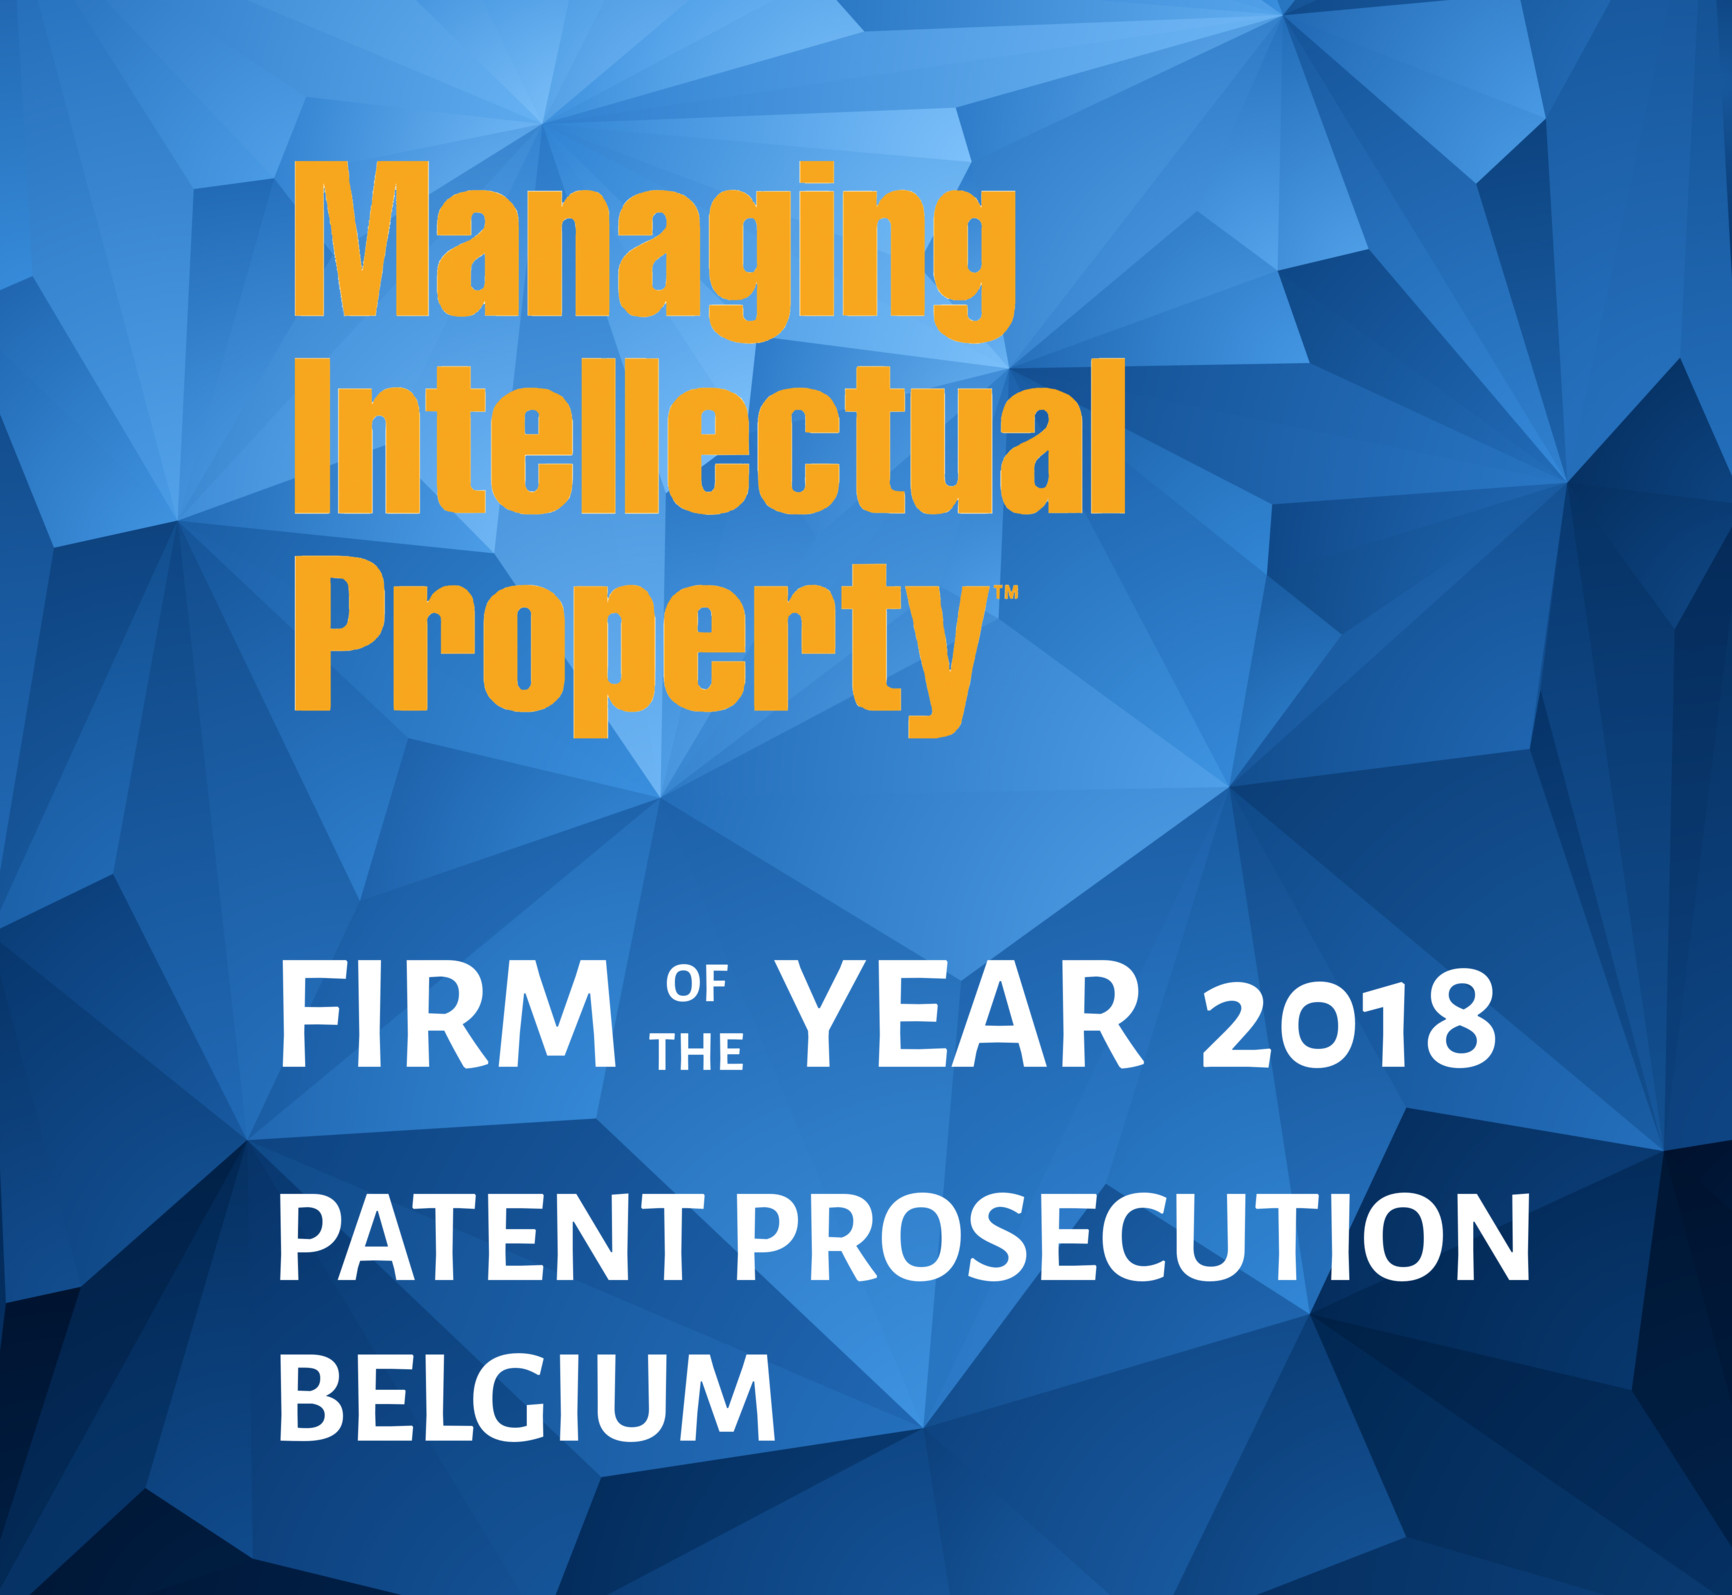 MIP Belgian Patent Prosecution Firm of the Year 2018!